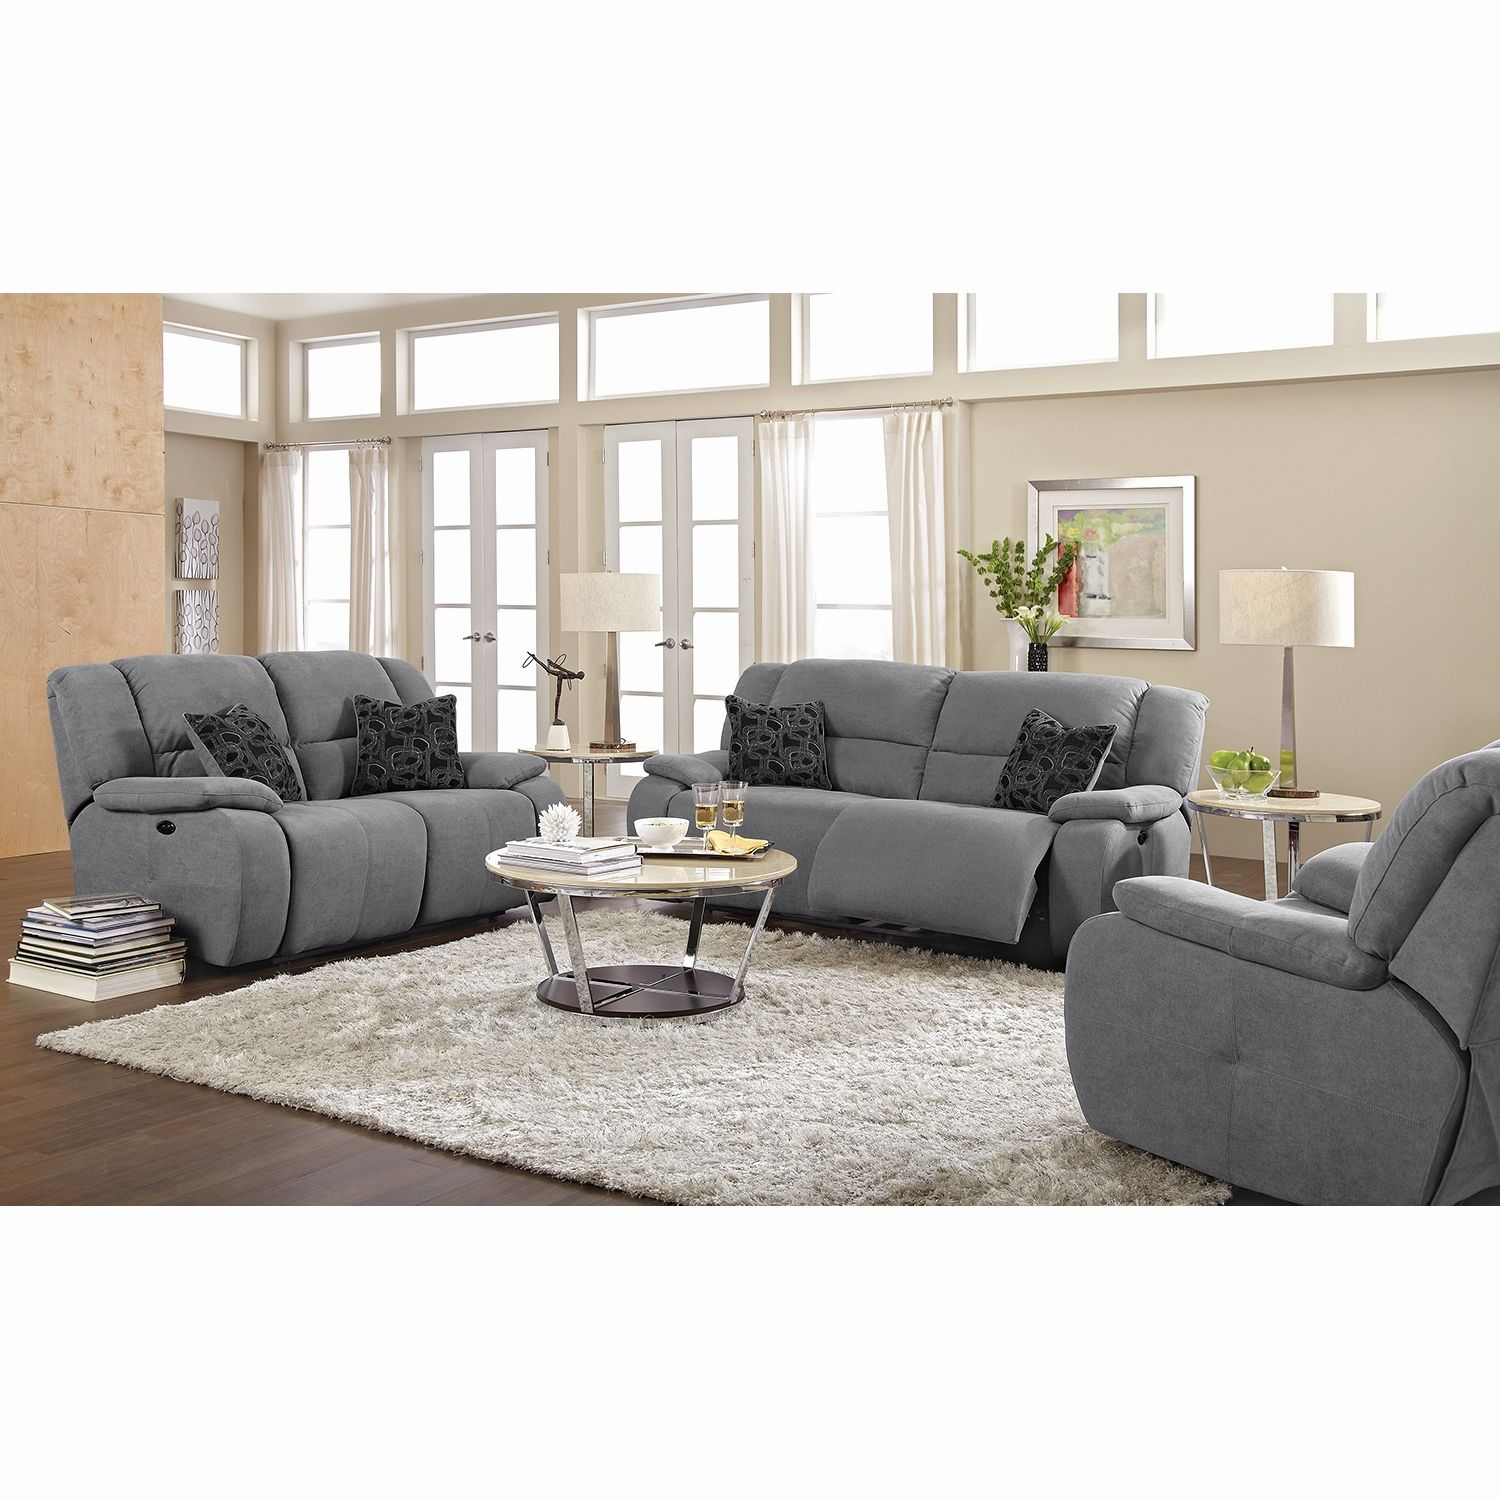 Inspirational Brown Microfiber Reclining sofa living room